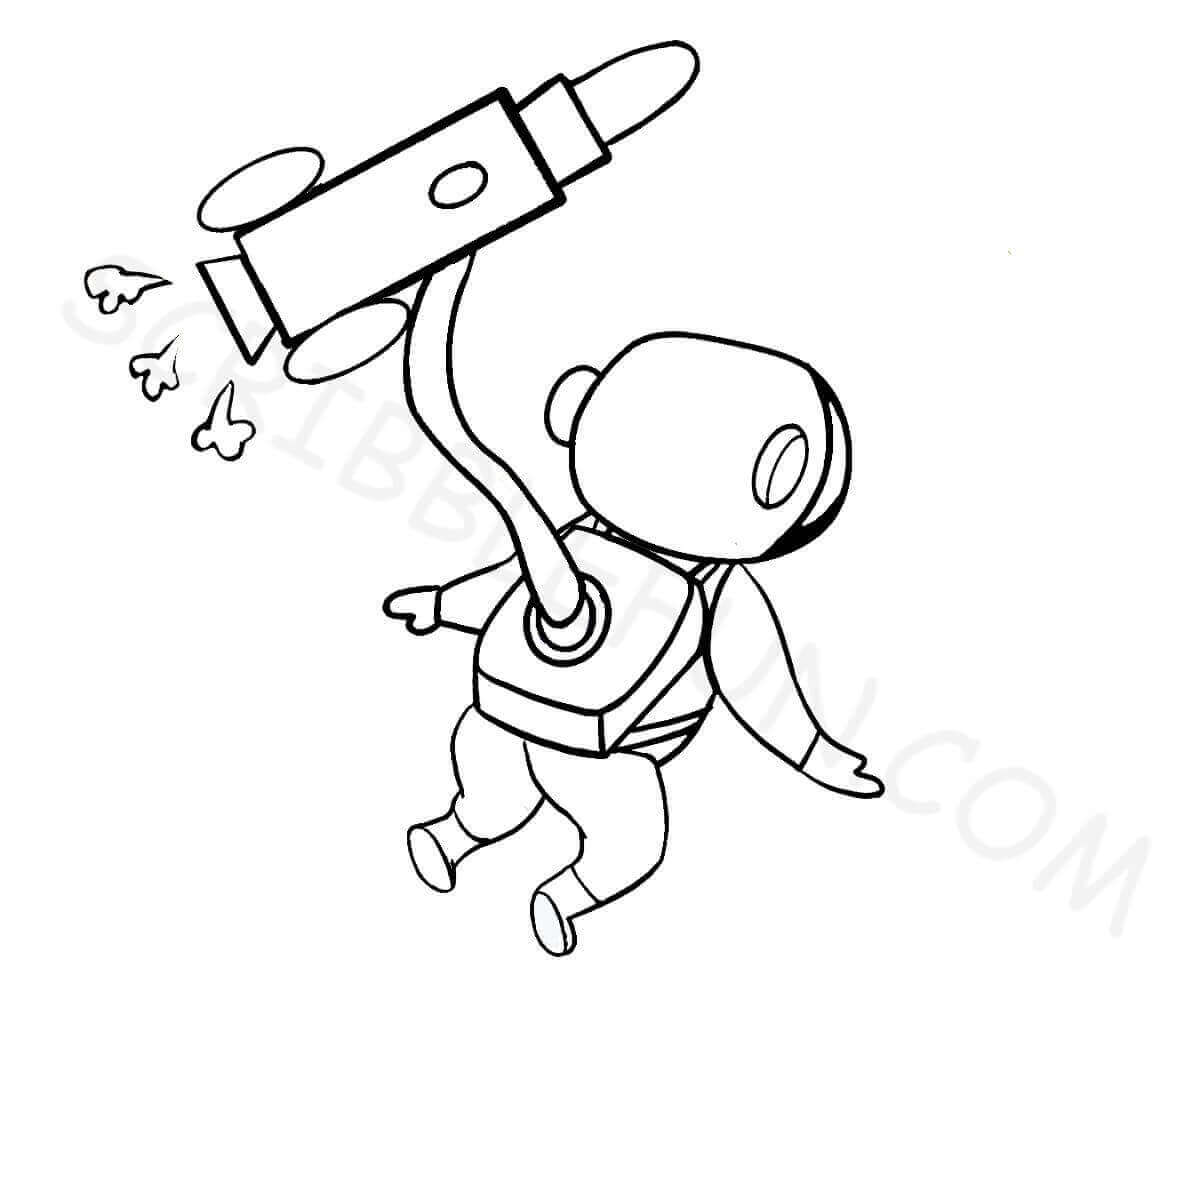 Astronaut and rocket coloring page